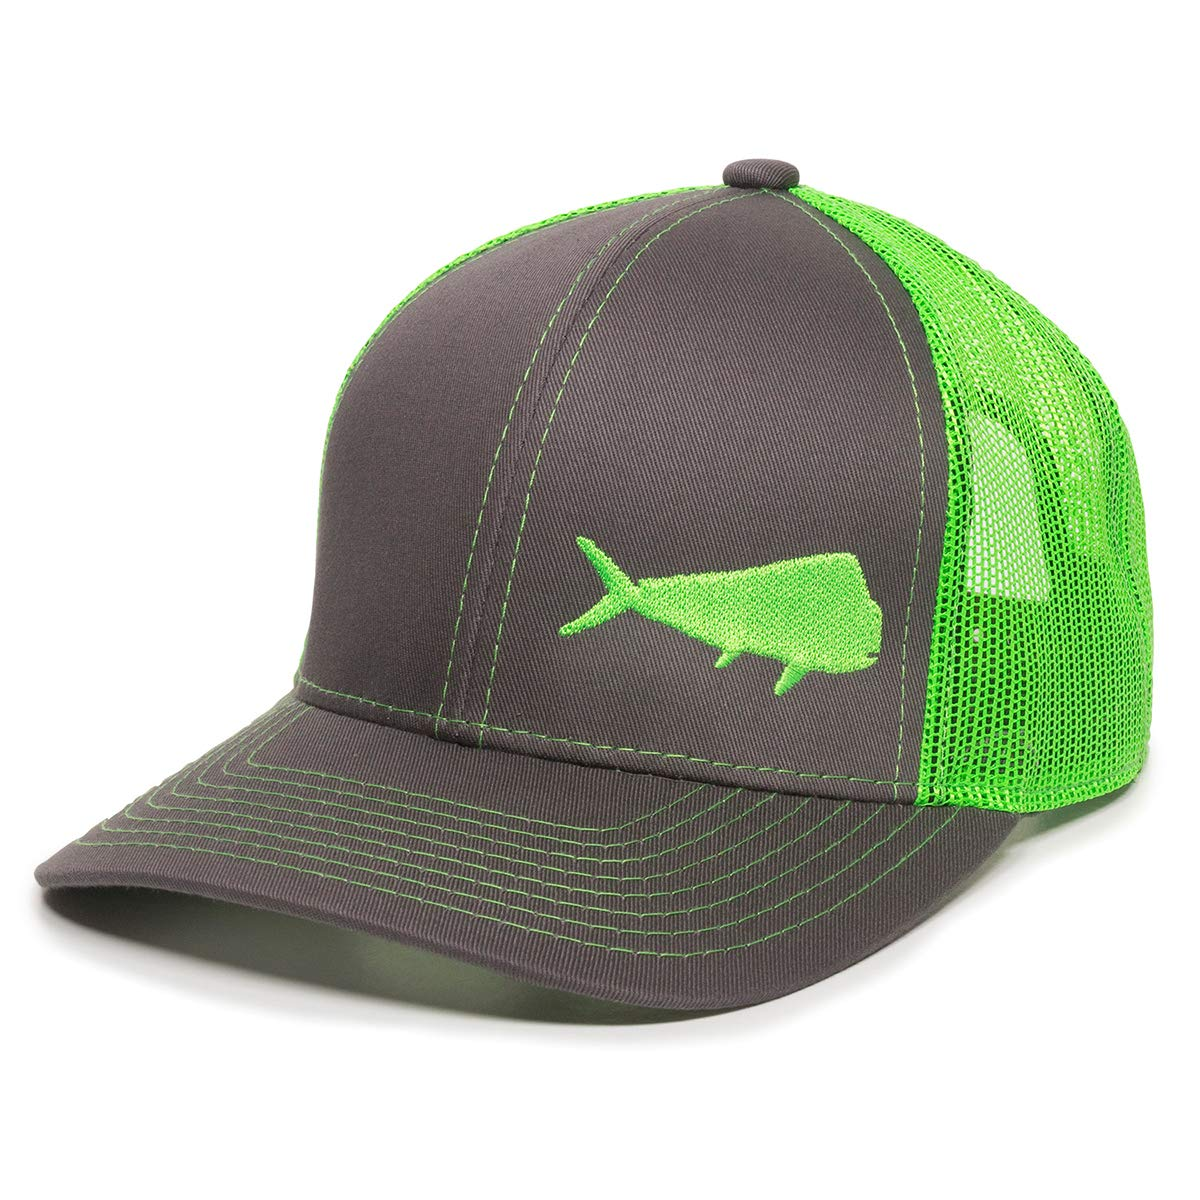 Fish Silhouettes Trucker Hat - Adjustable Baseball Cap w Snapback Closure  at Amazon Men s Clothing store  cc6a9af0ca4